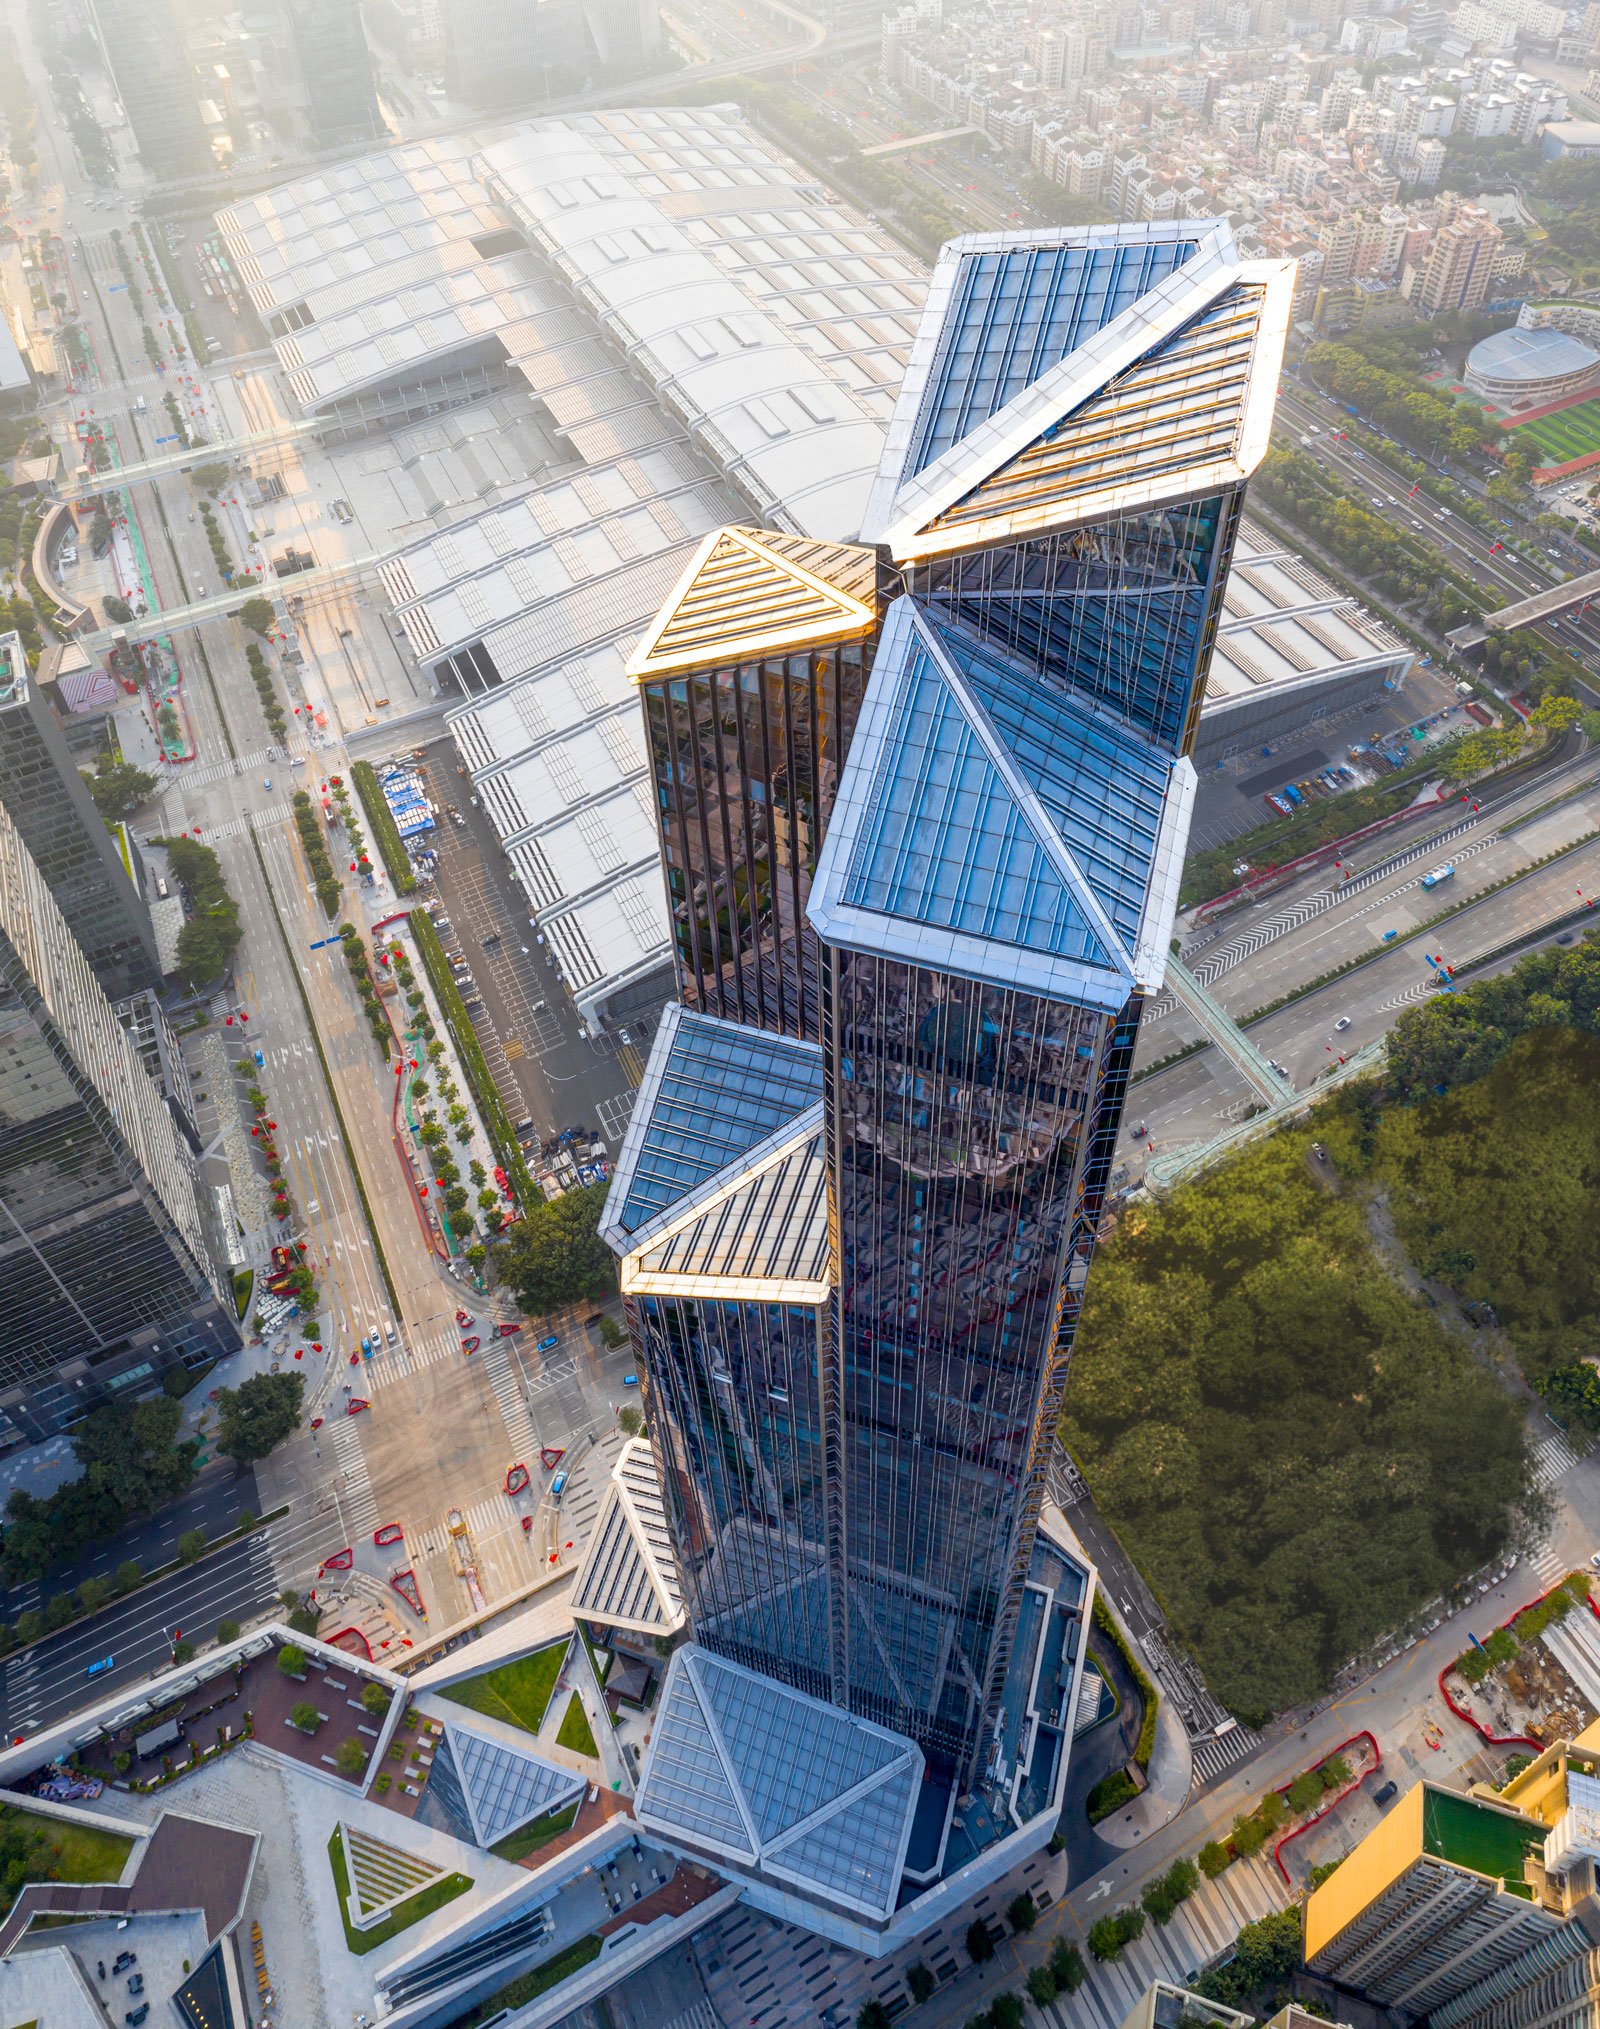 New Global Record Set In 2019 For Number Of Supertall Building Completions World Property Journal Global News Center